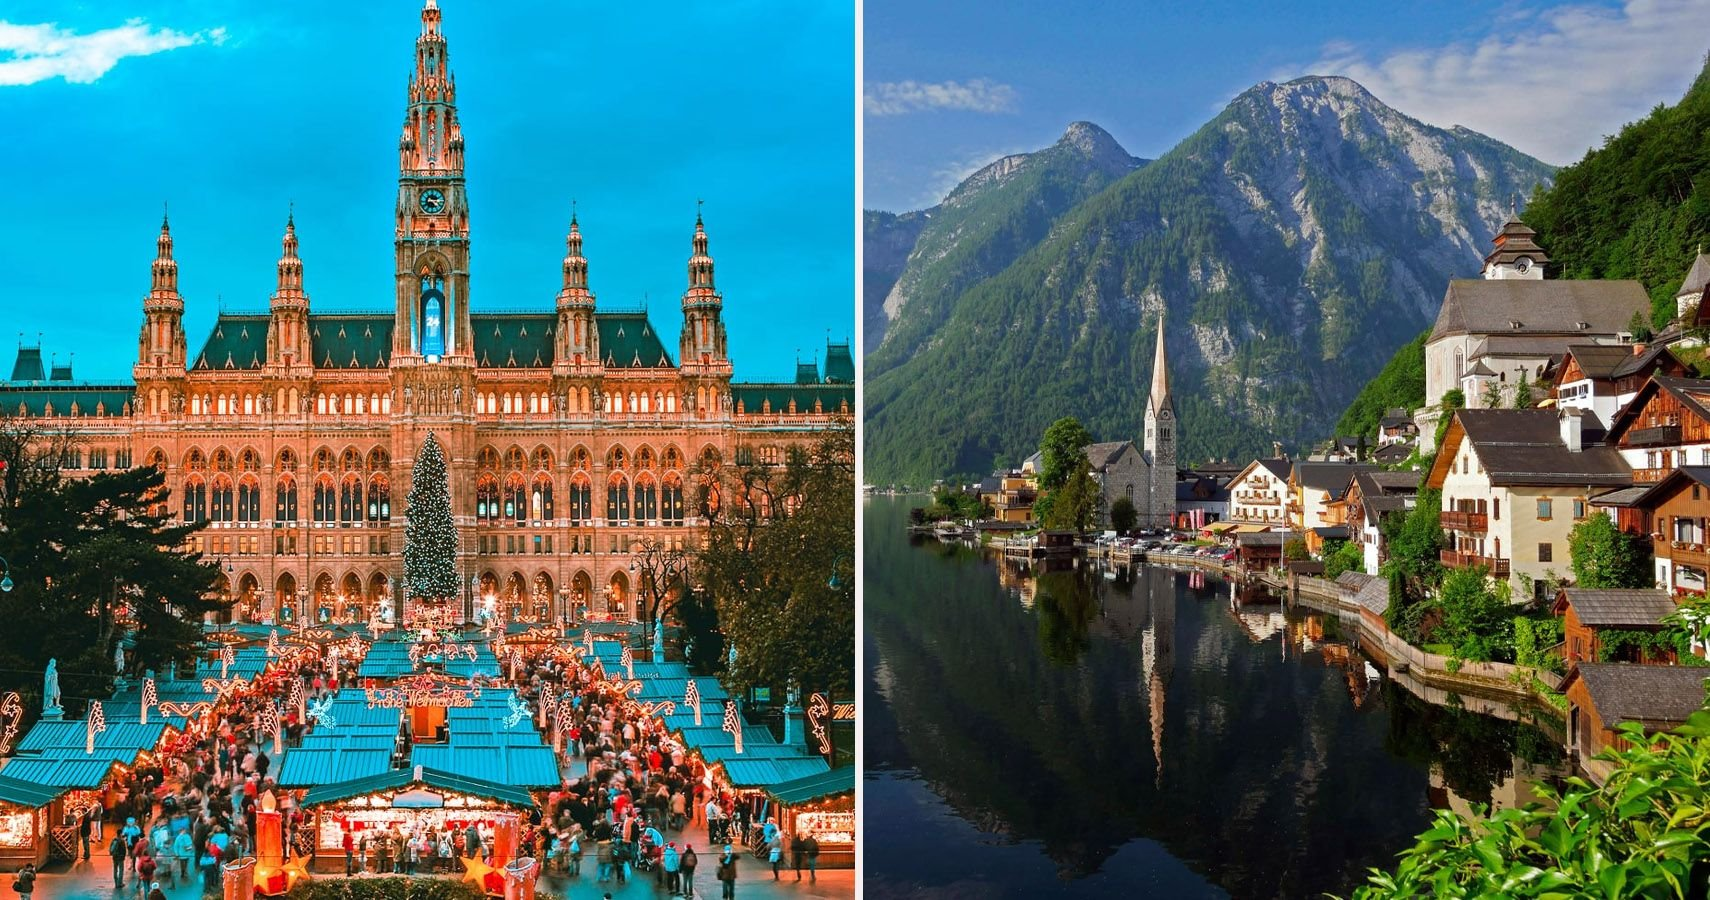 10 Reasons Why People Love Traveling To Austria